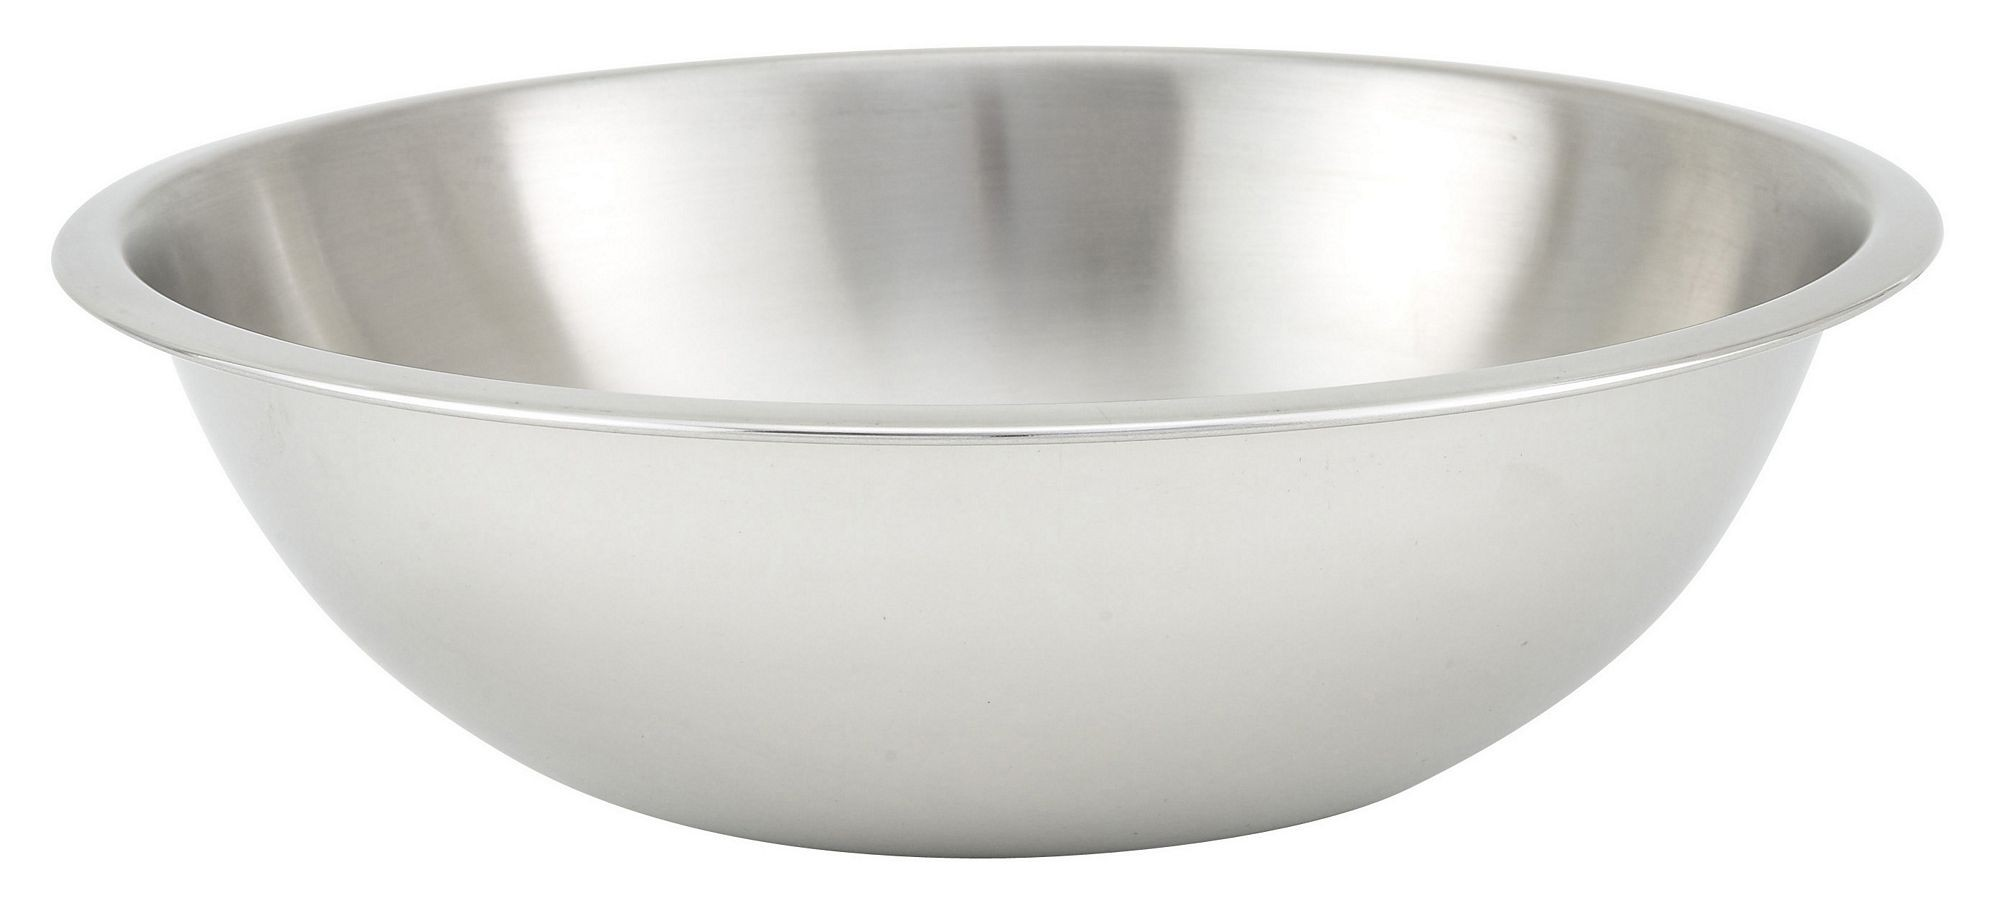 Winco MXHV-500 Heavy Duty Stainless Steel 5 Qt. Mixing Bowl